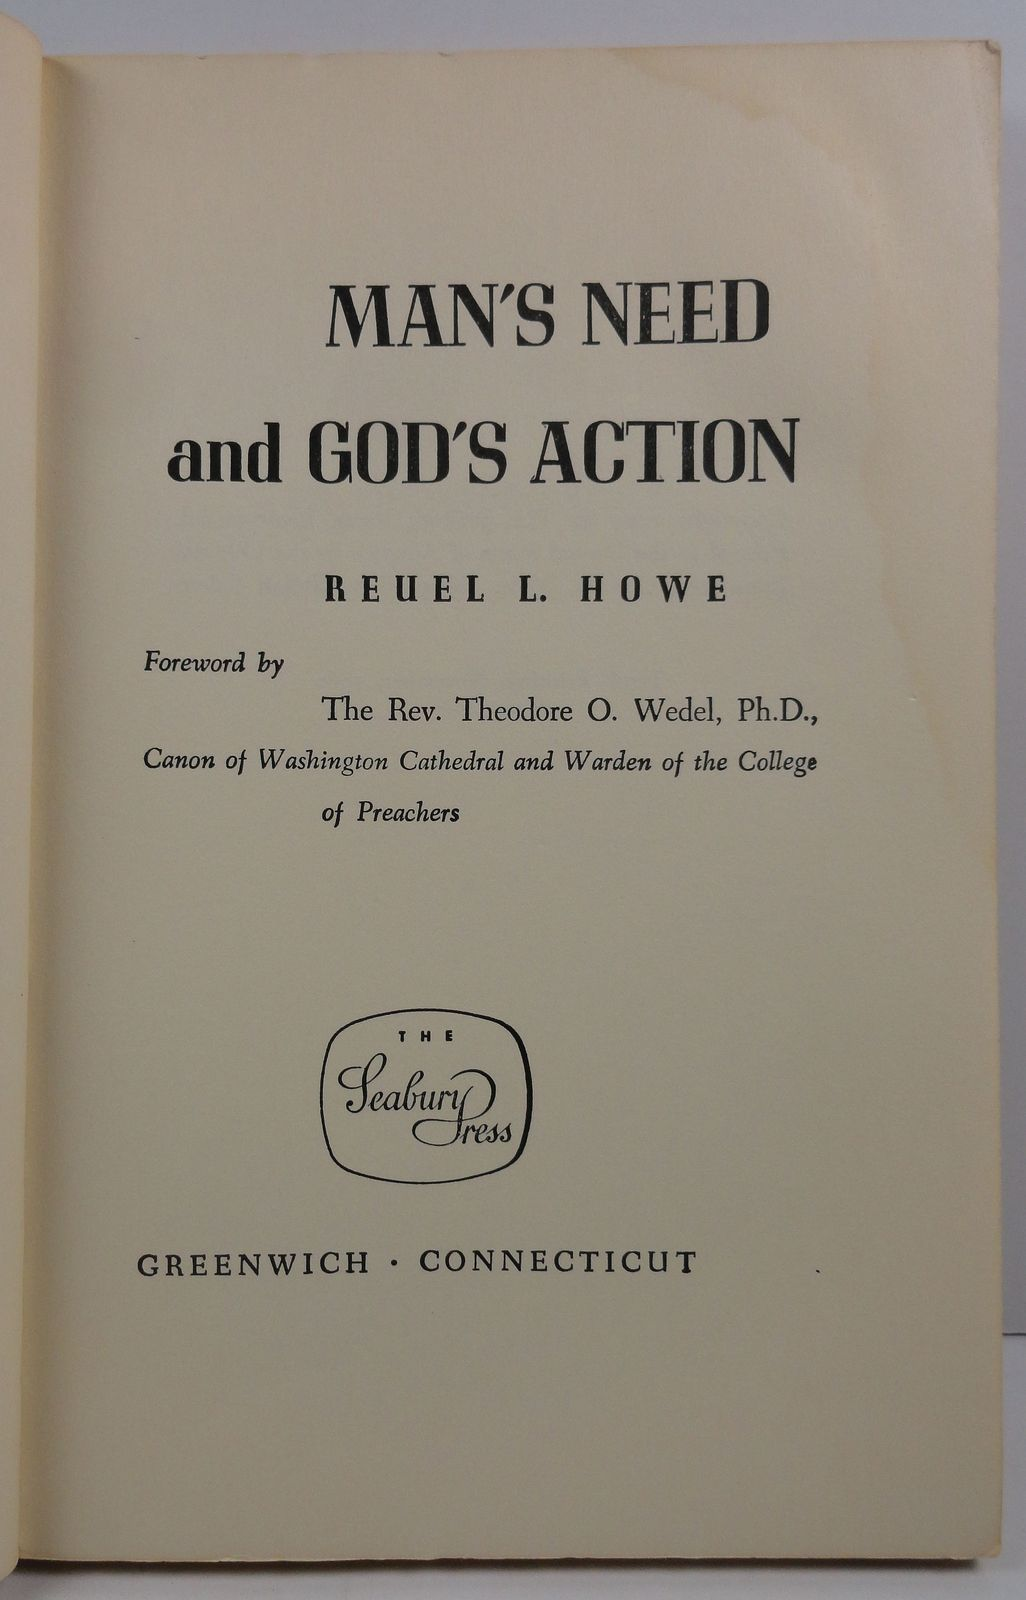 Man's Need and God's Action by Reuel L. Howe 1960 Seabury